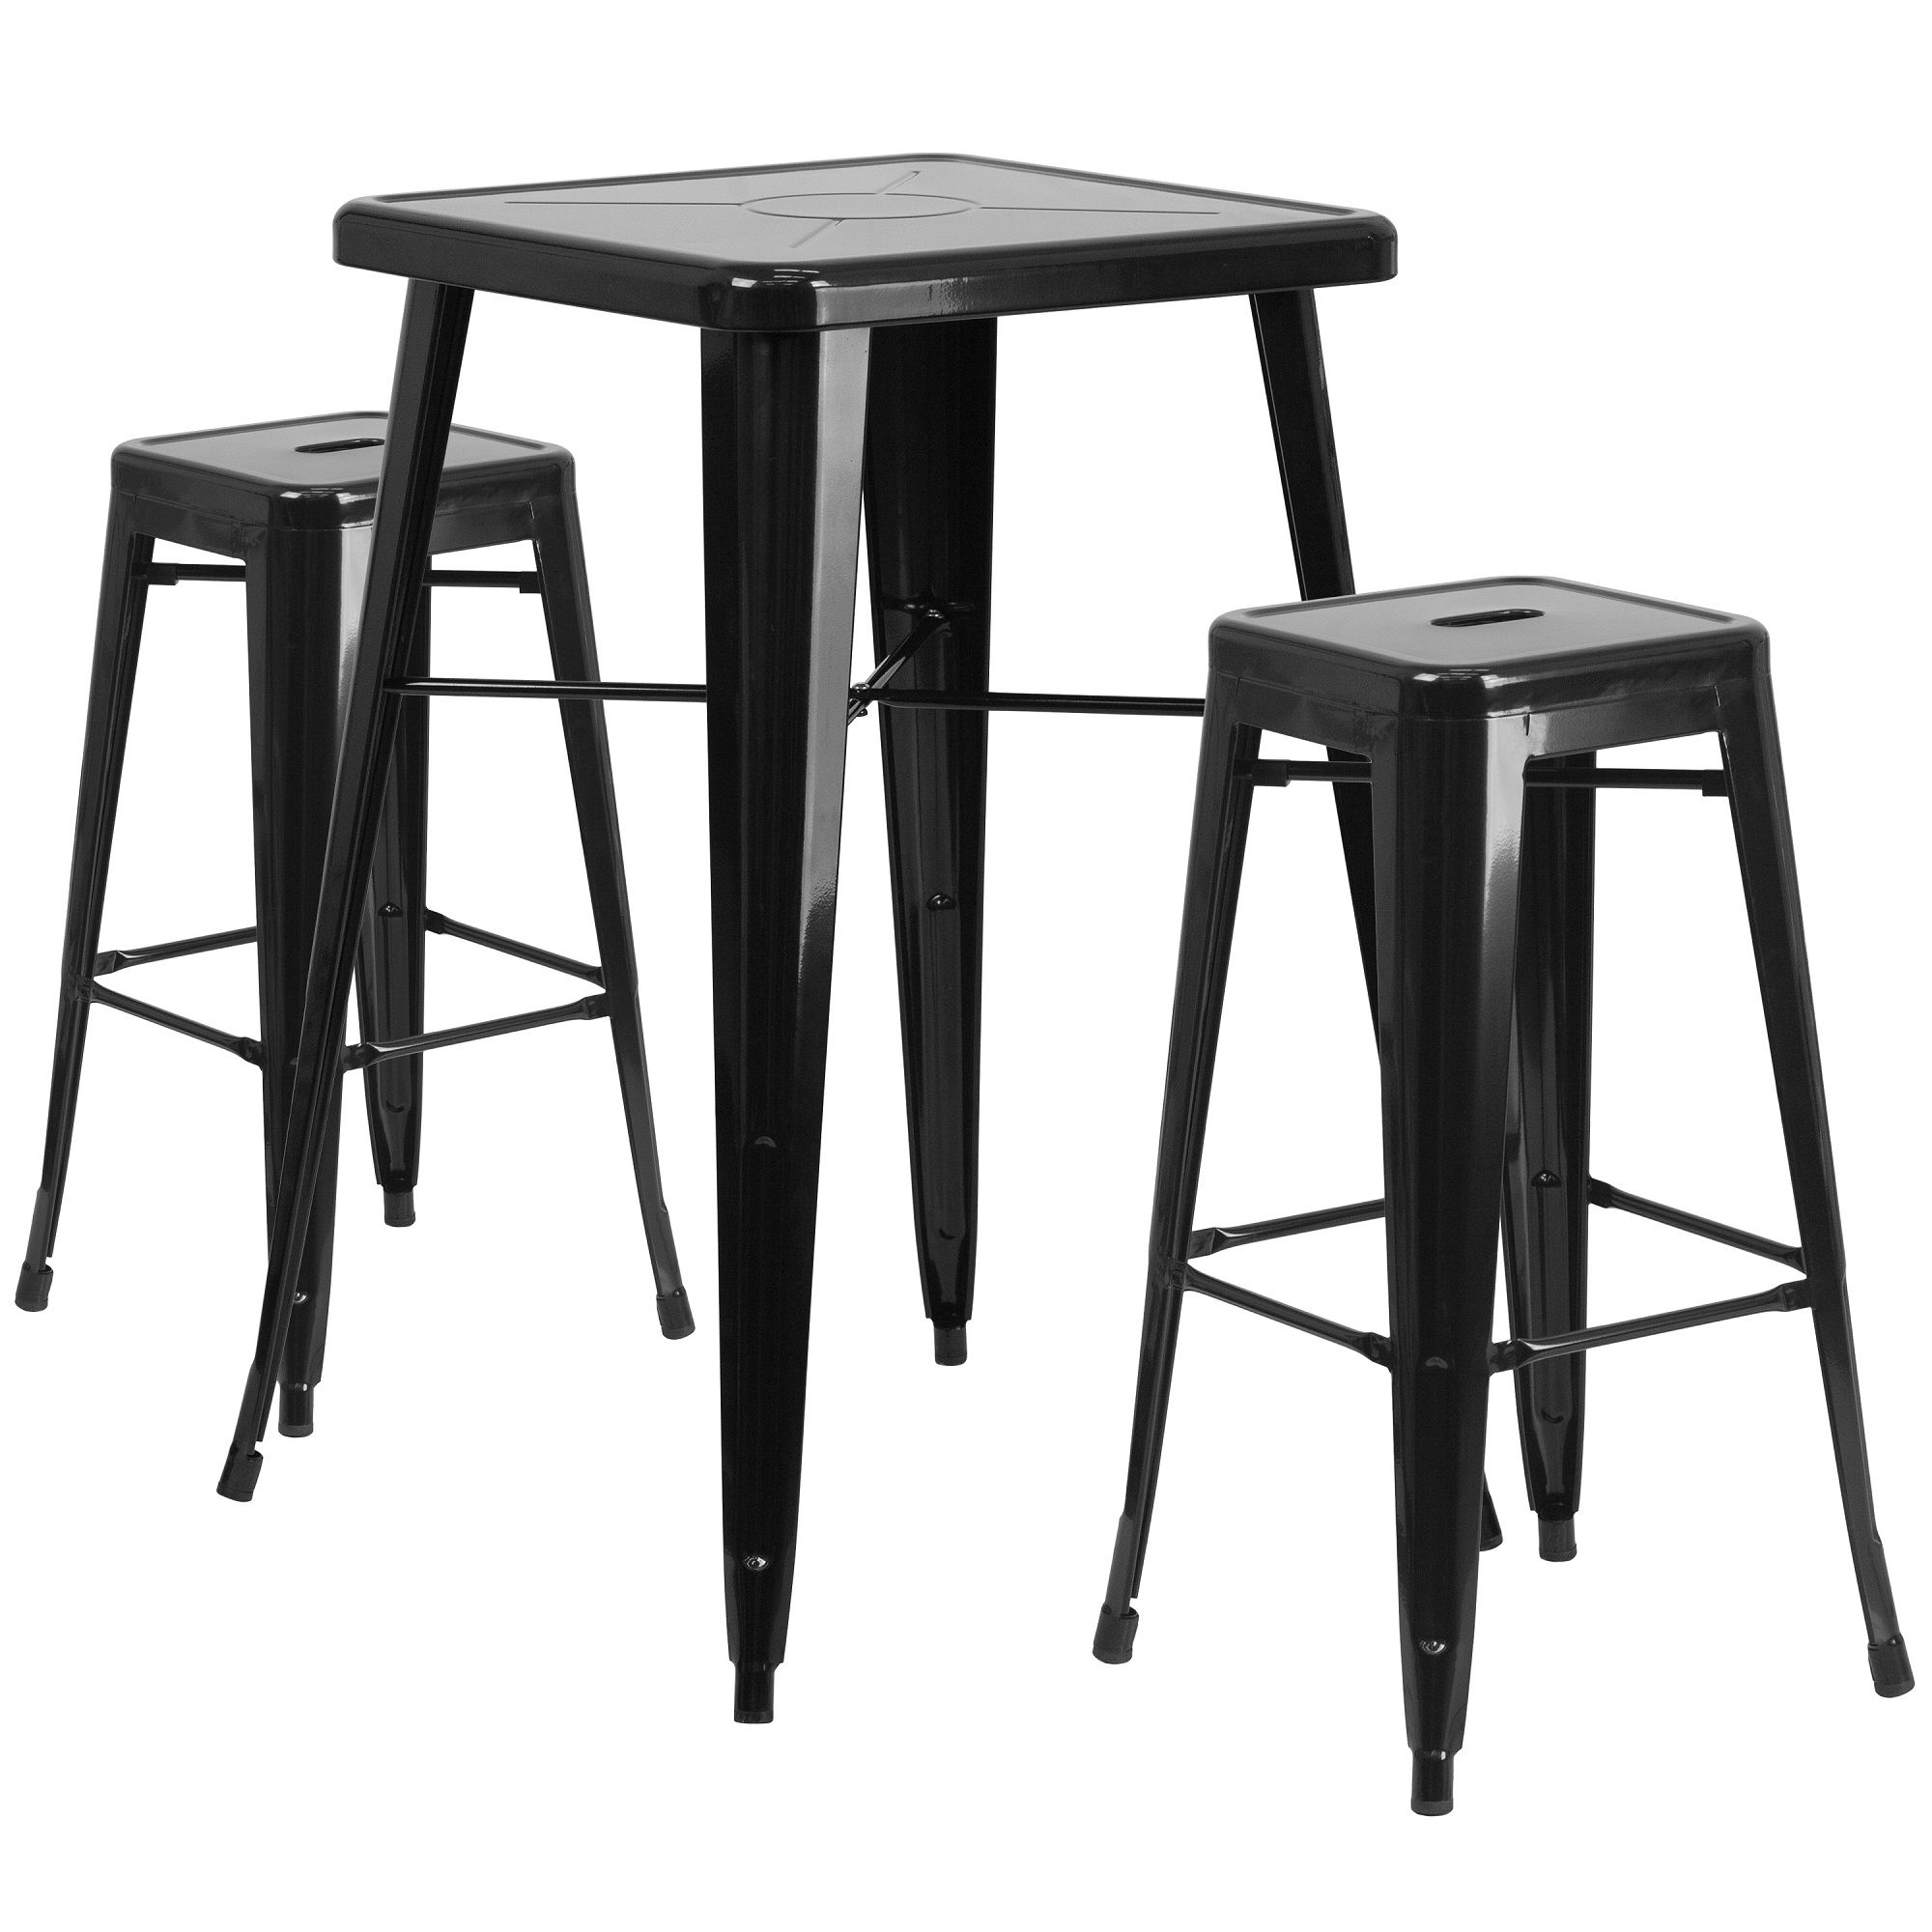 Set Of 3 Black Metal Square Bar Stools And Bar Height Table 40